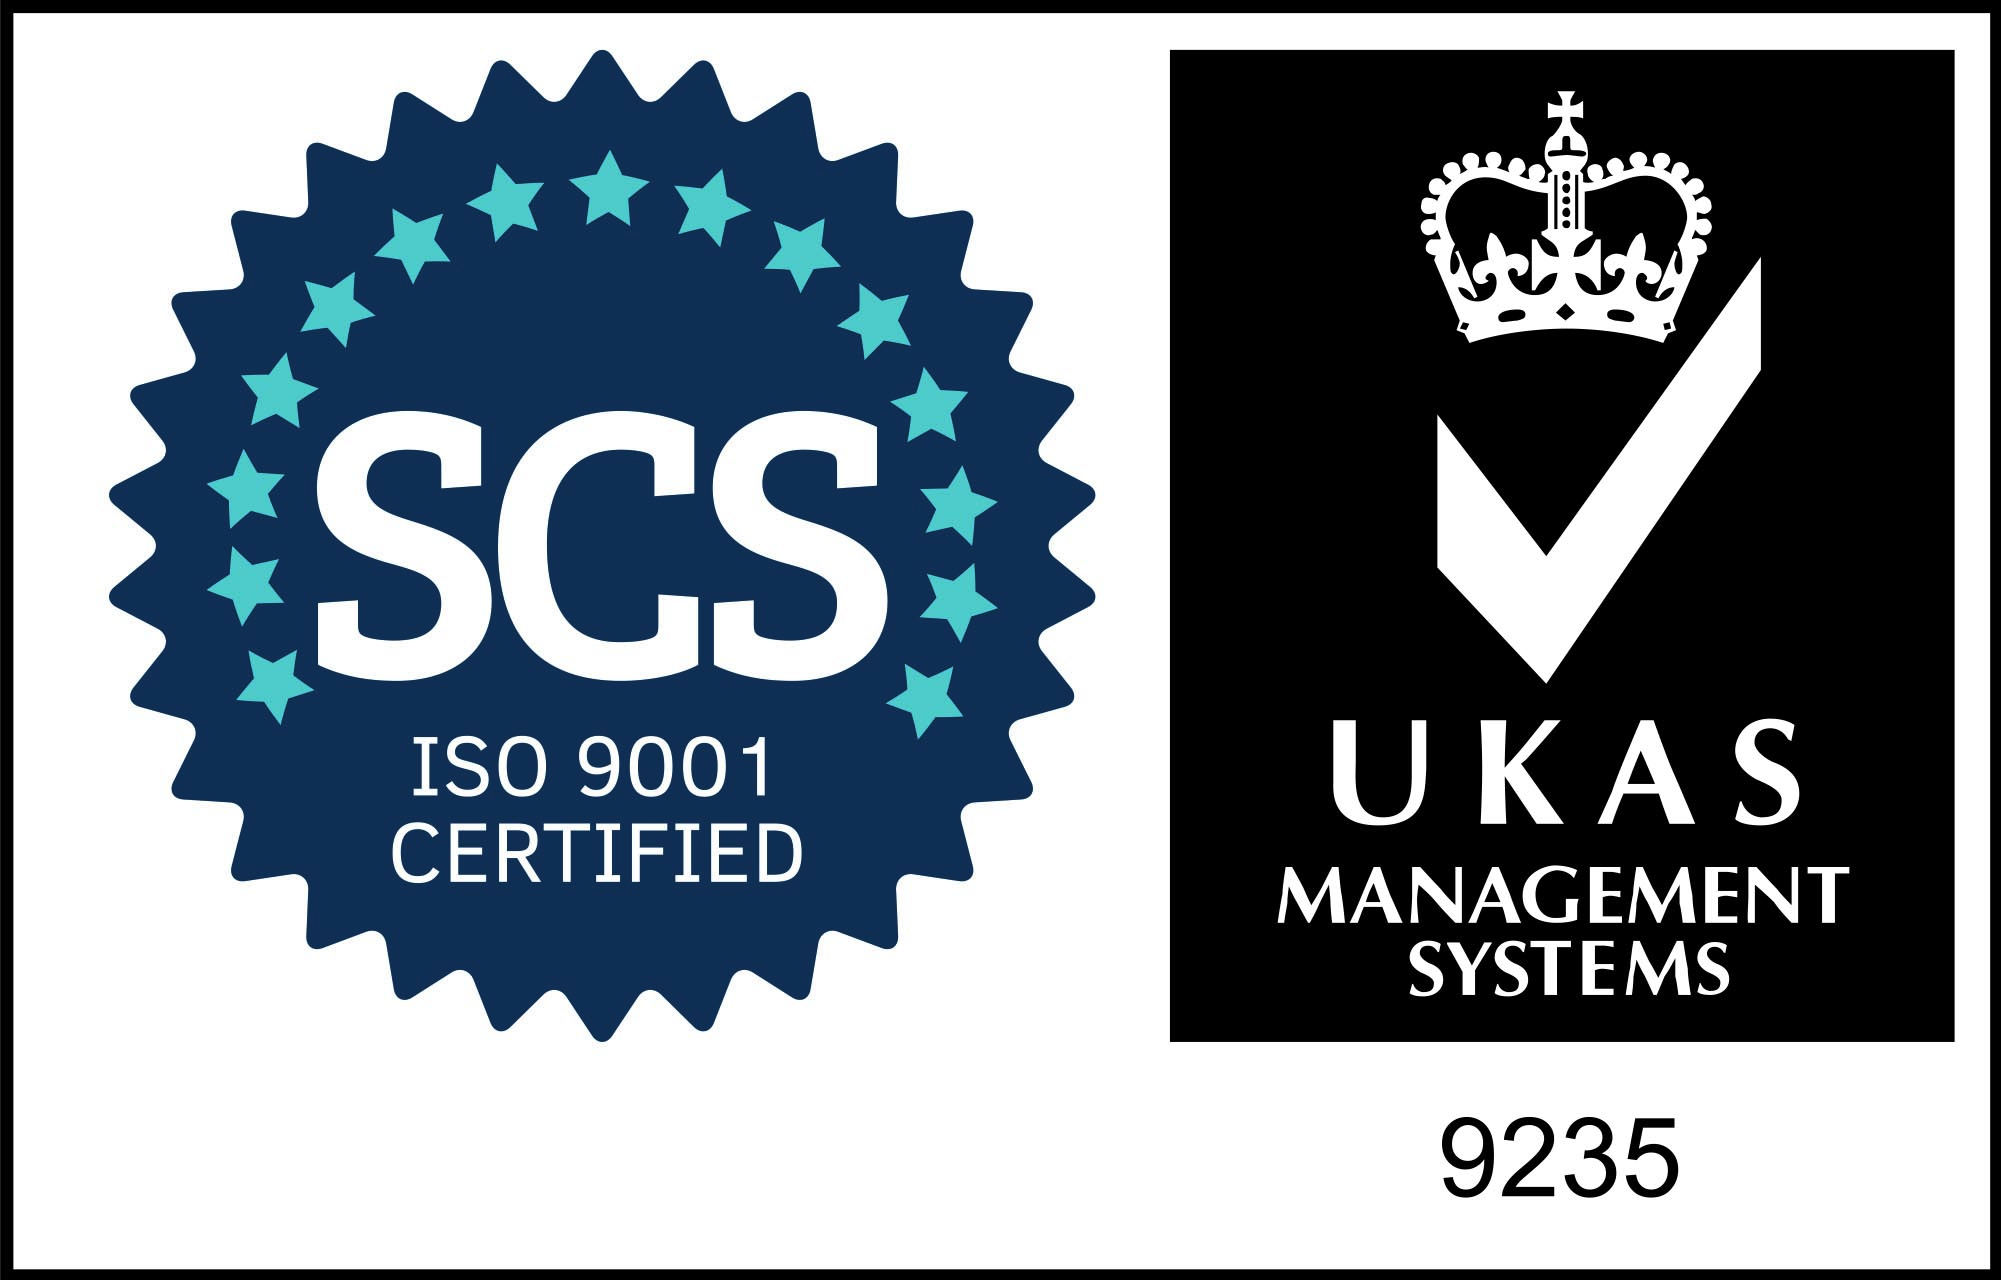 UKAS ISO 9001 WHITE BACKGROUND